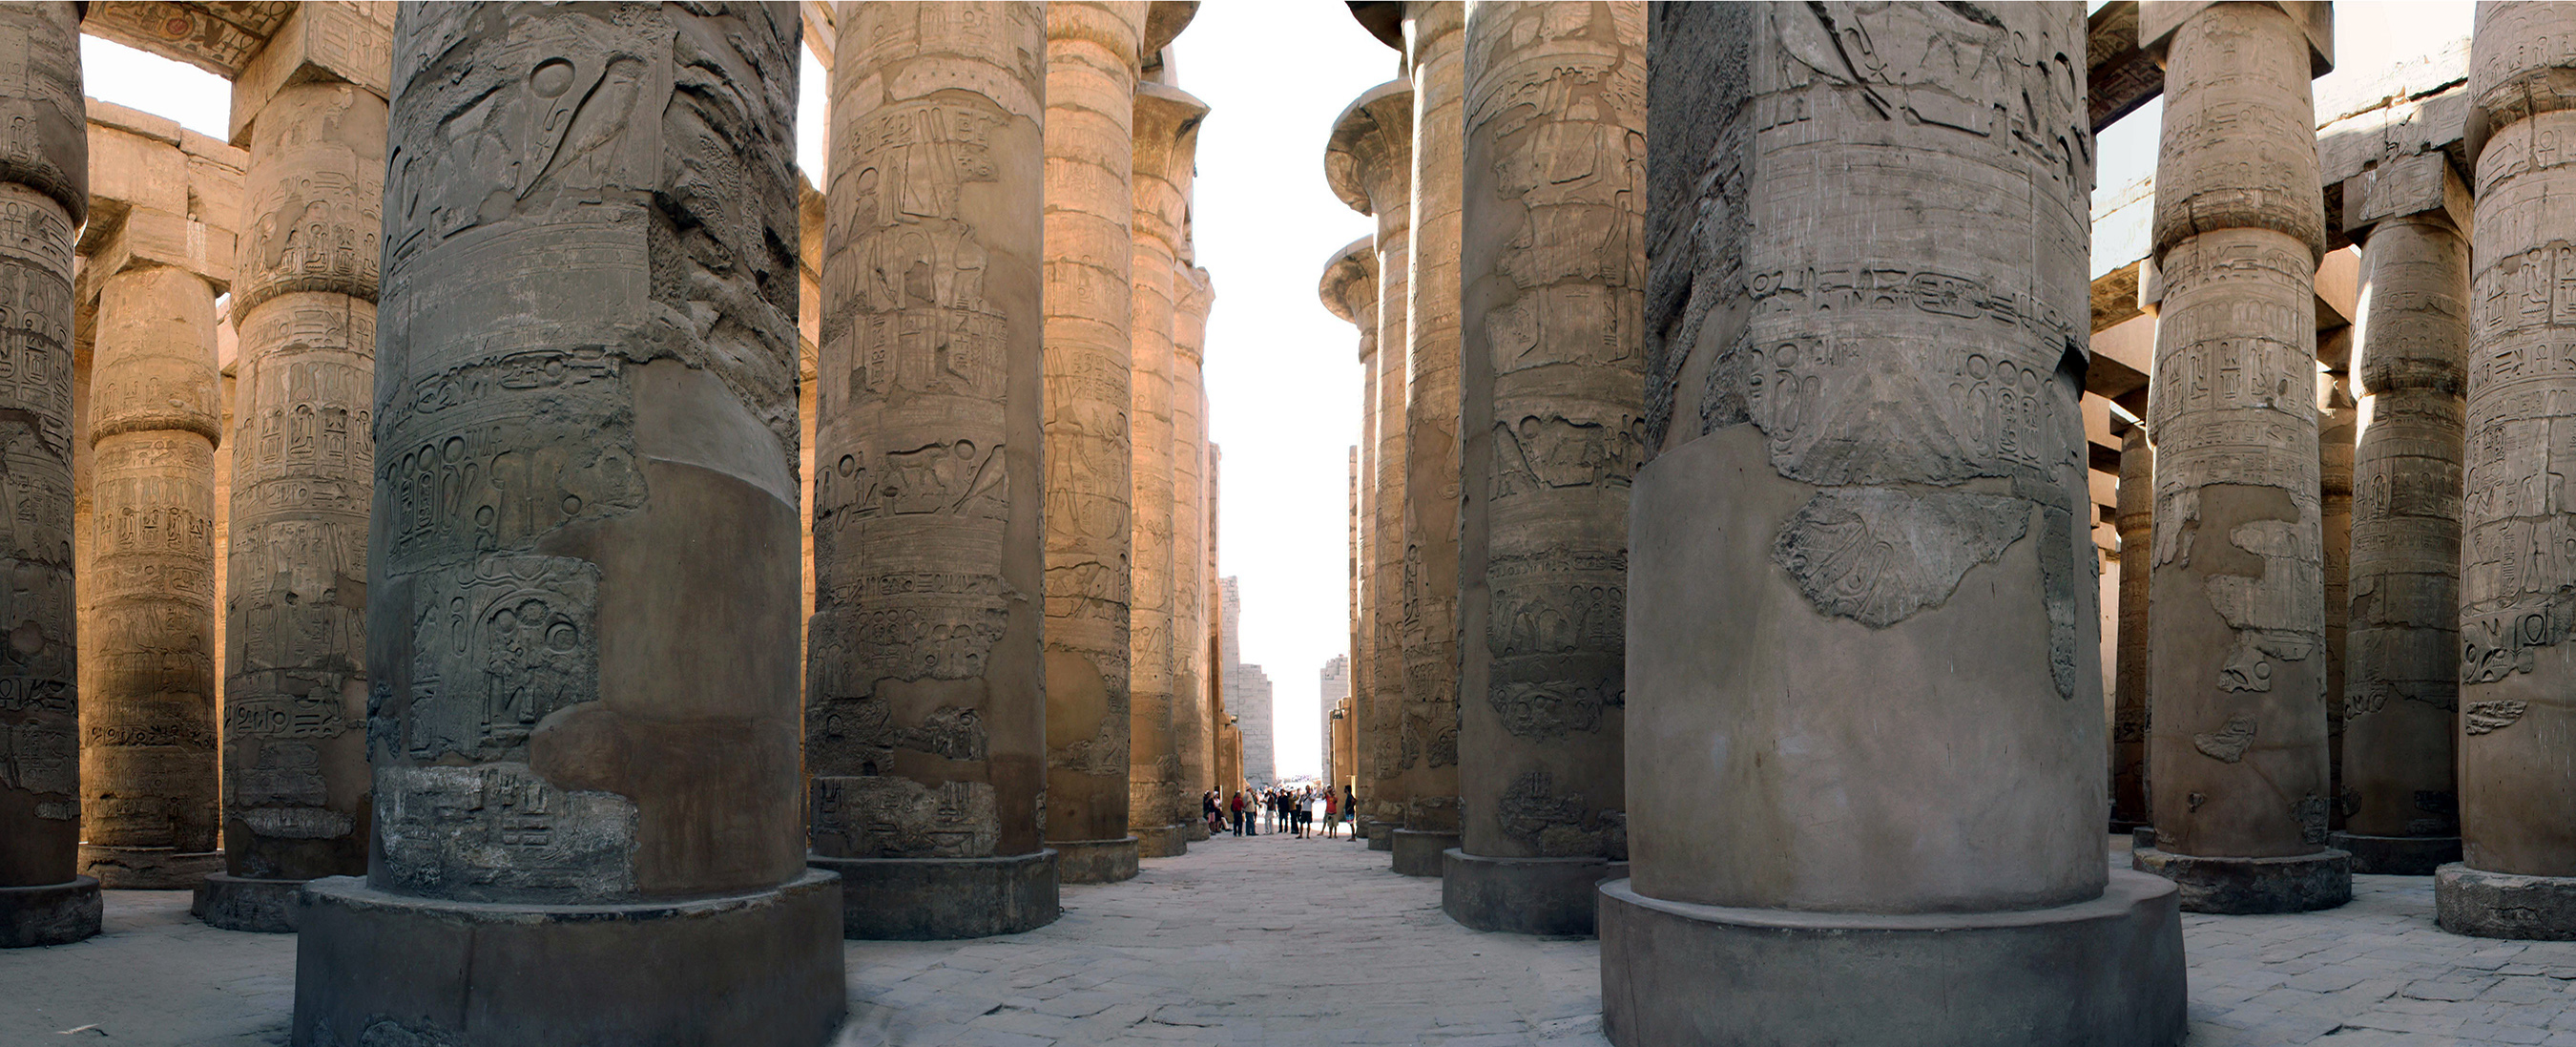 Hypostyle Hall, c. 1250 B.C.E. (hall), 18th and 19th Dynasties, New Kingdom, sandstone and mud brick, Karnak, at Luxor, Egypt (photo: Blalonde, public domain)